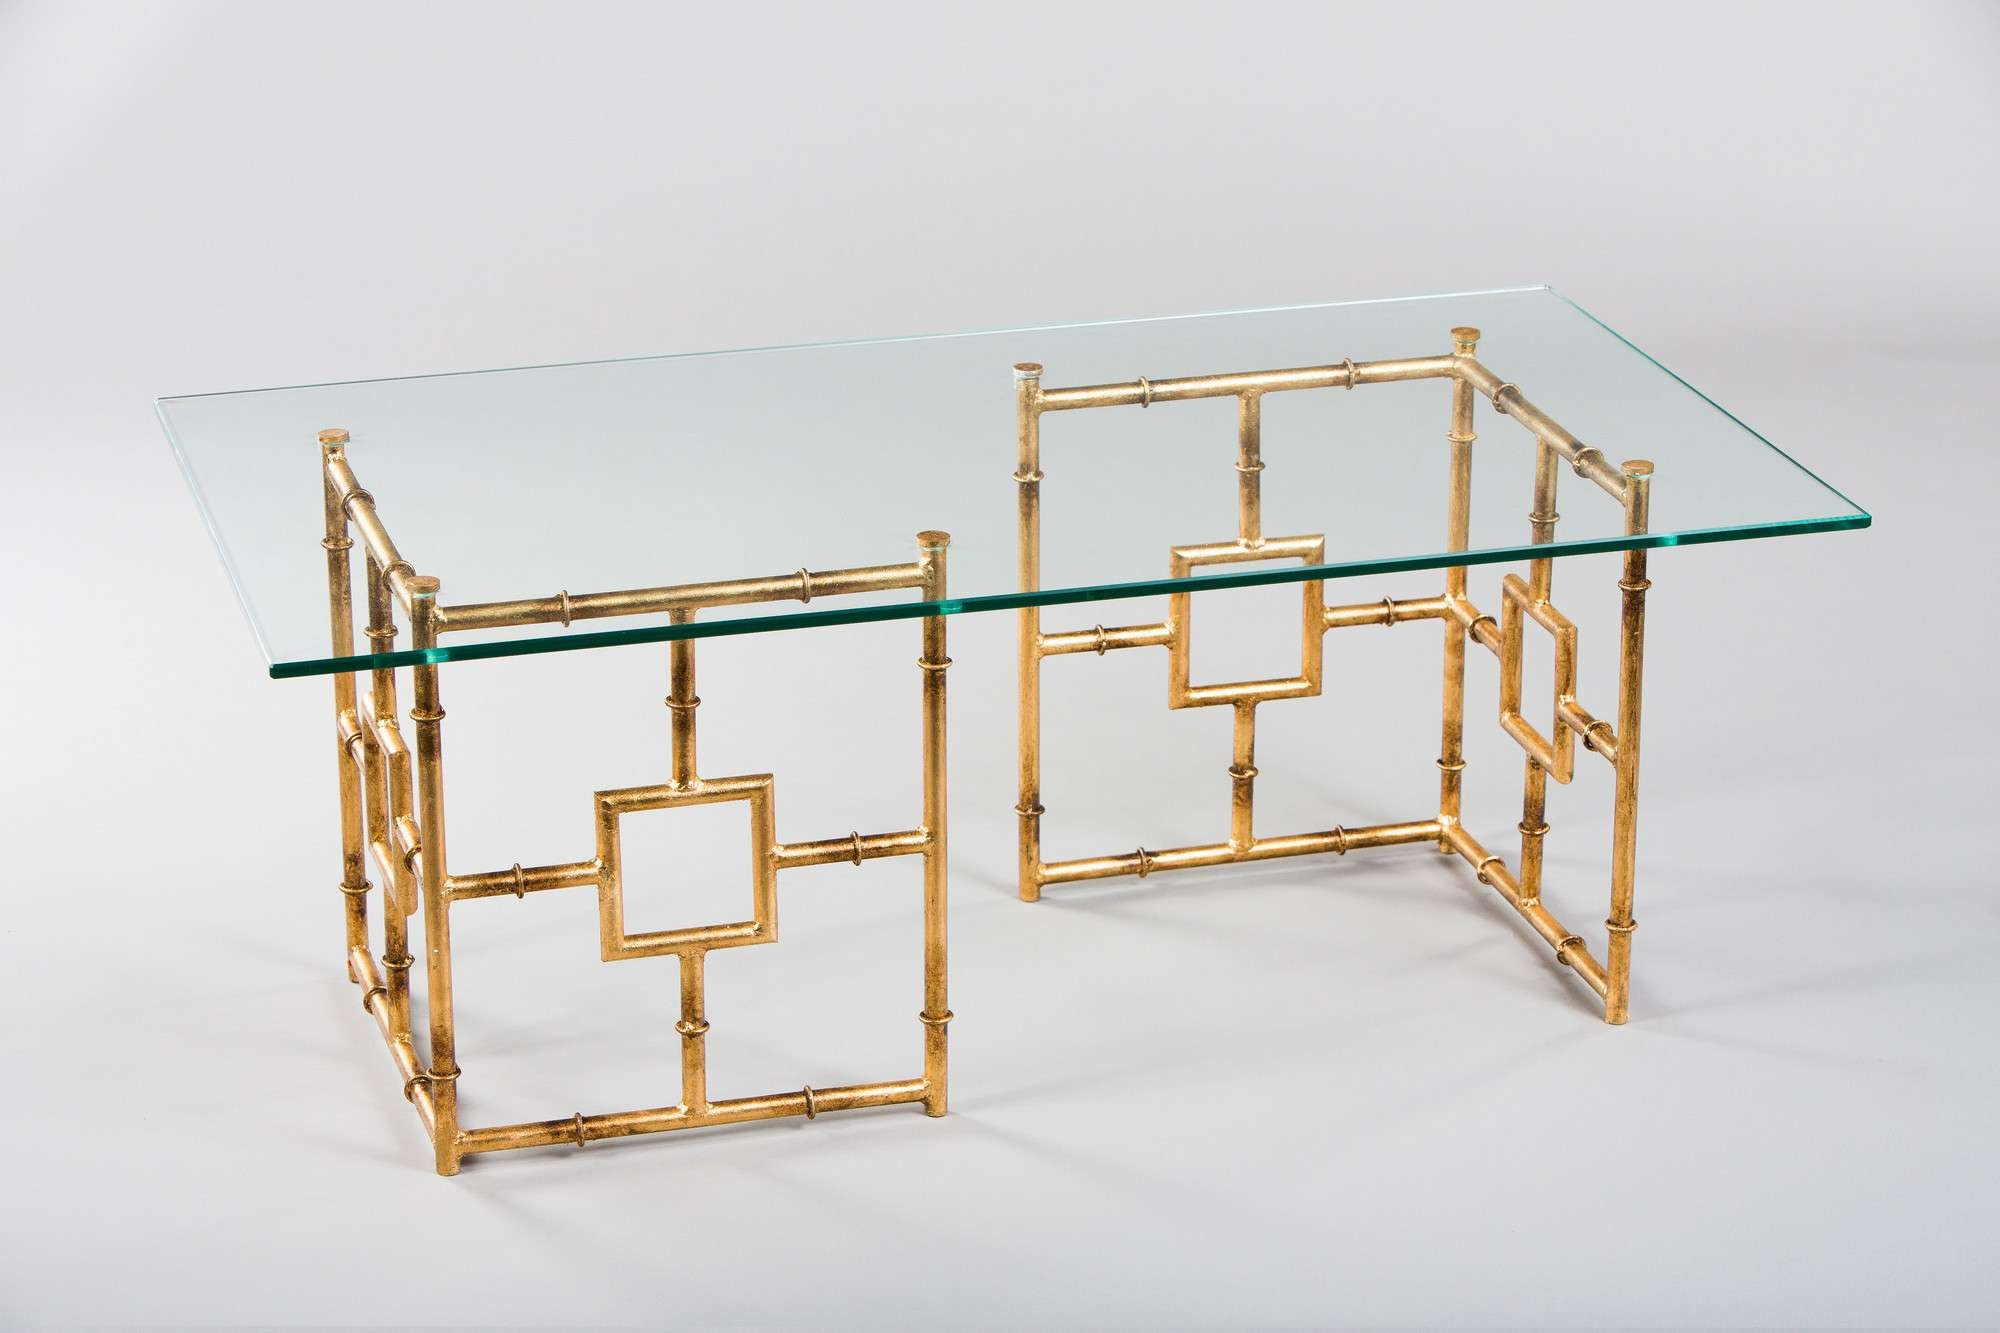 Gold Bamboo Glass Coffee Table Fresh Coffee Tables Glass Coffee Regarding Recent Gold Bamboo Coffee Tables (View 7 of 20)